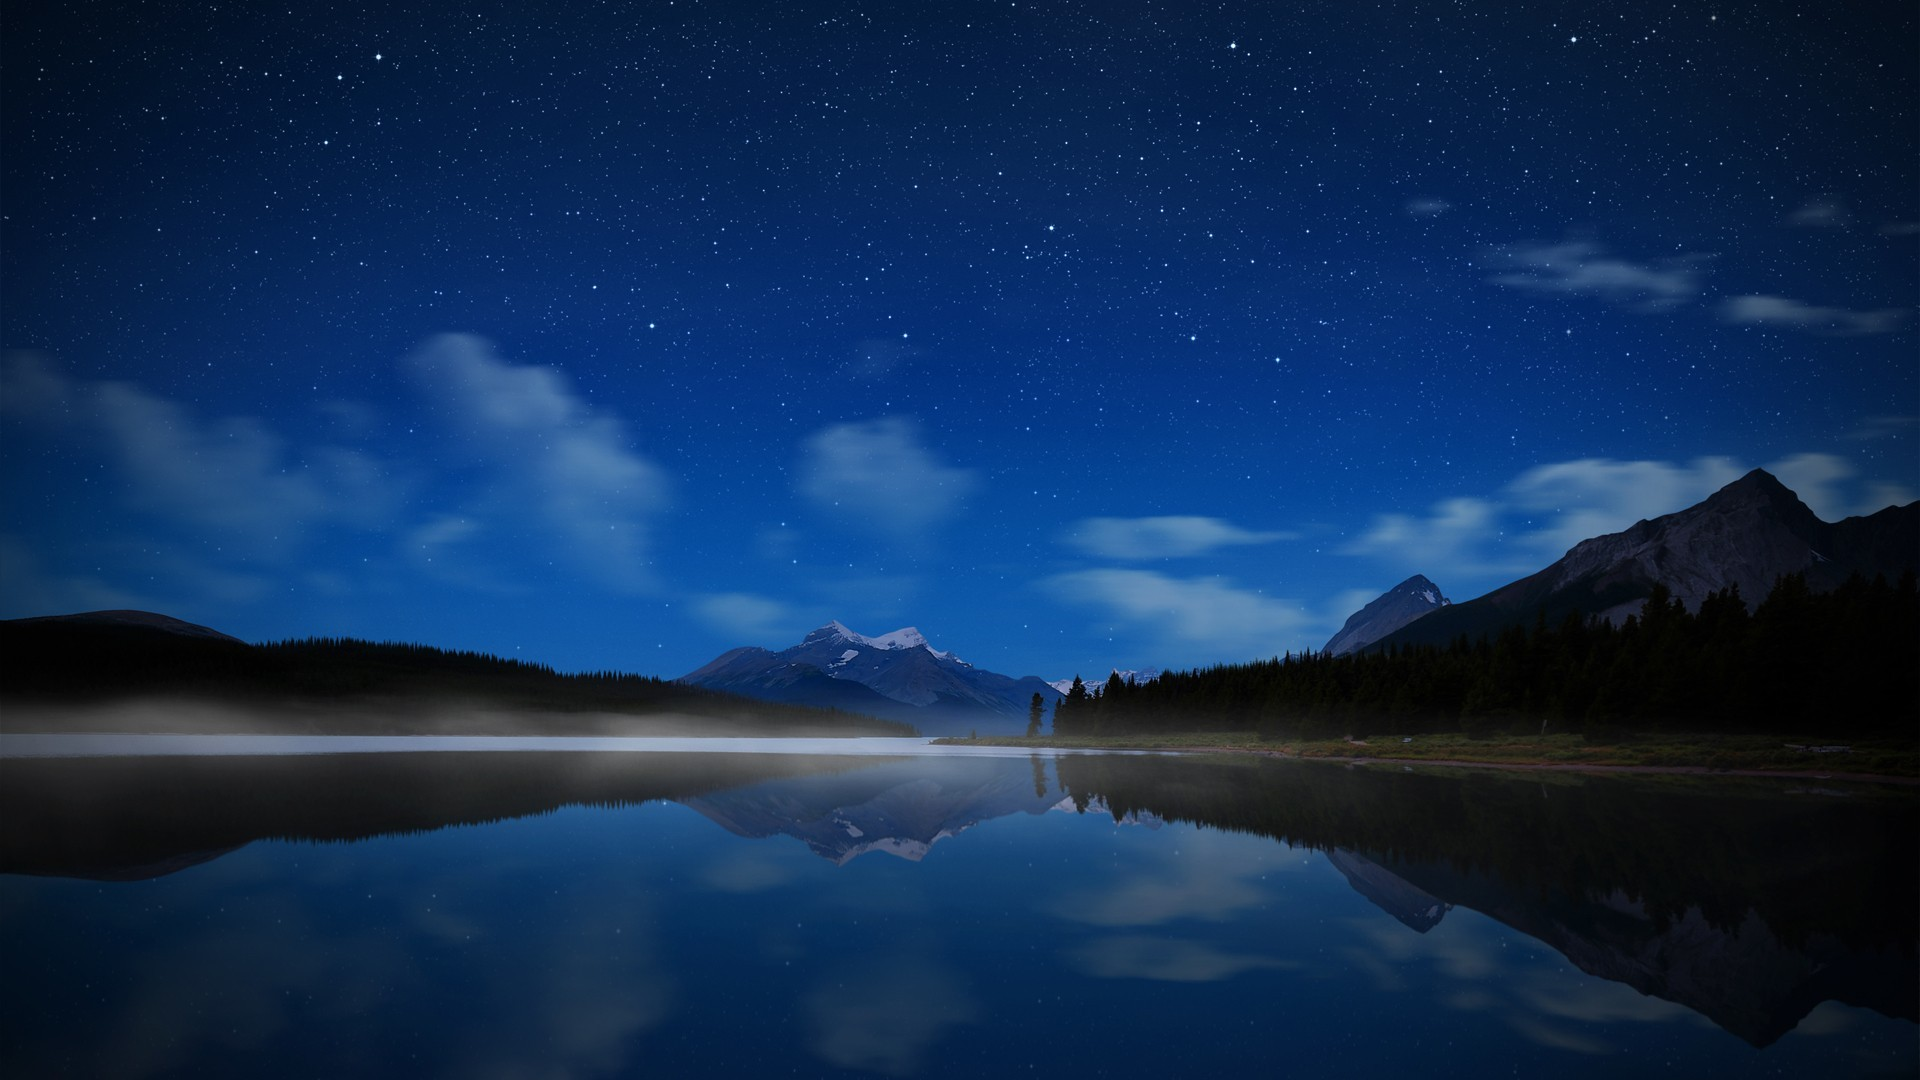 night-time-wide-wallpaper-hd | wallpaper.wiki